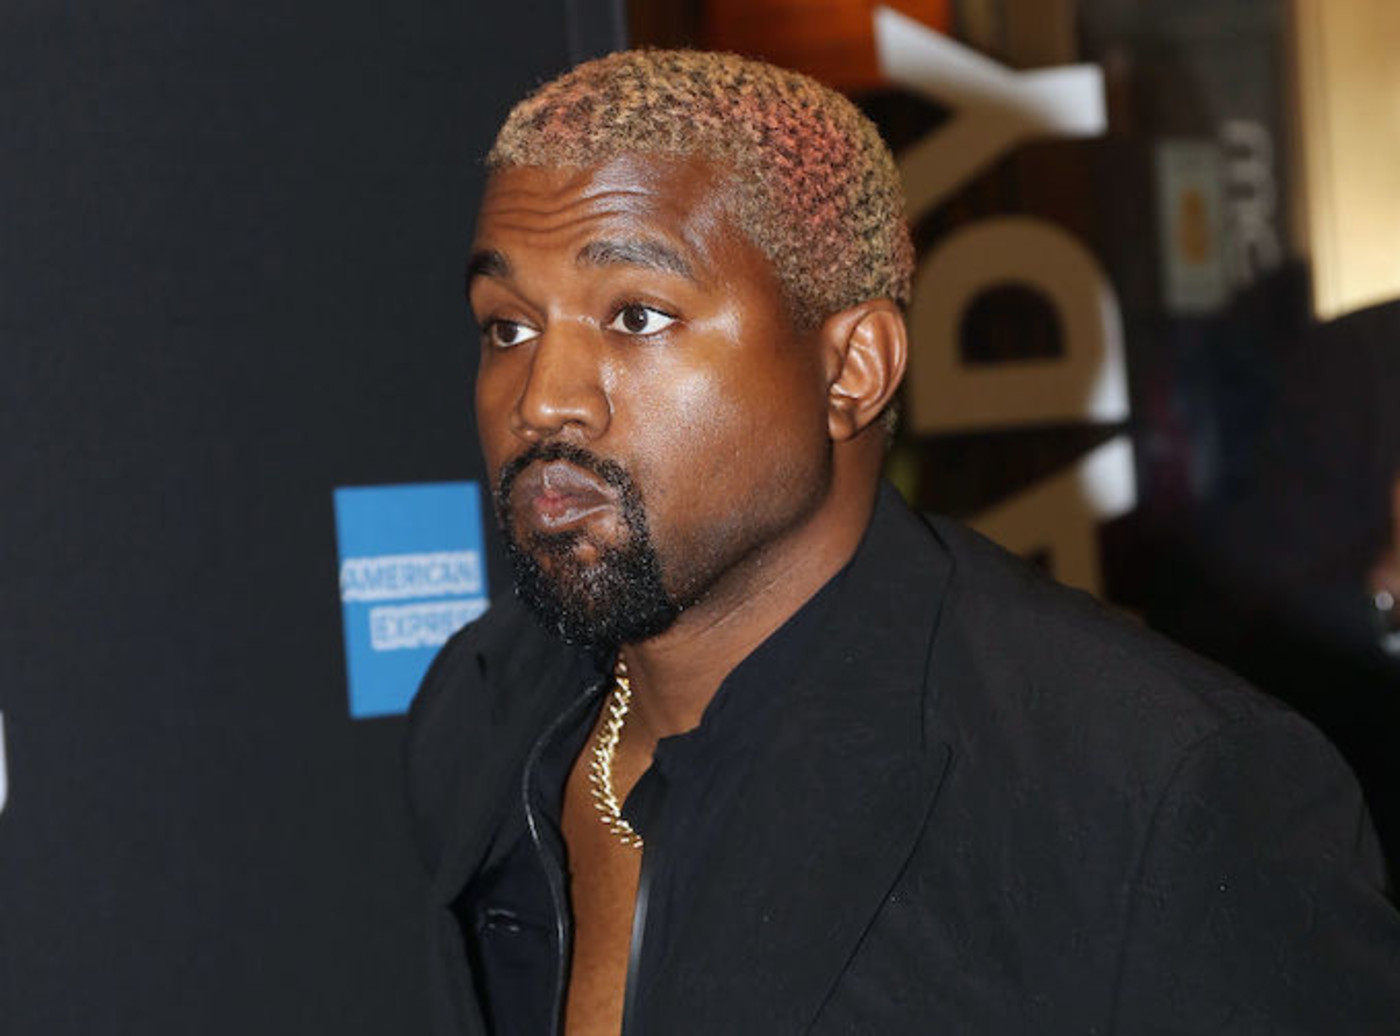 This is a picture of Kanye.